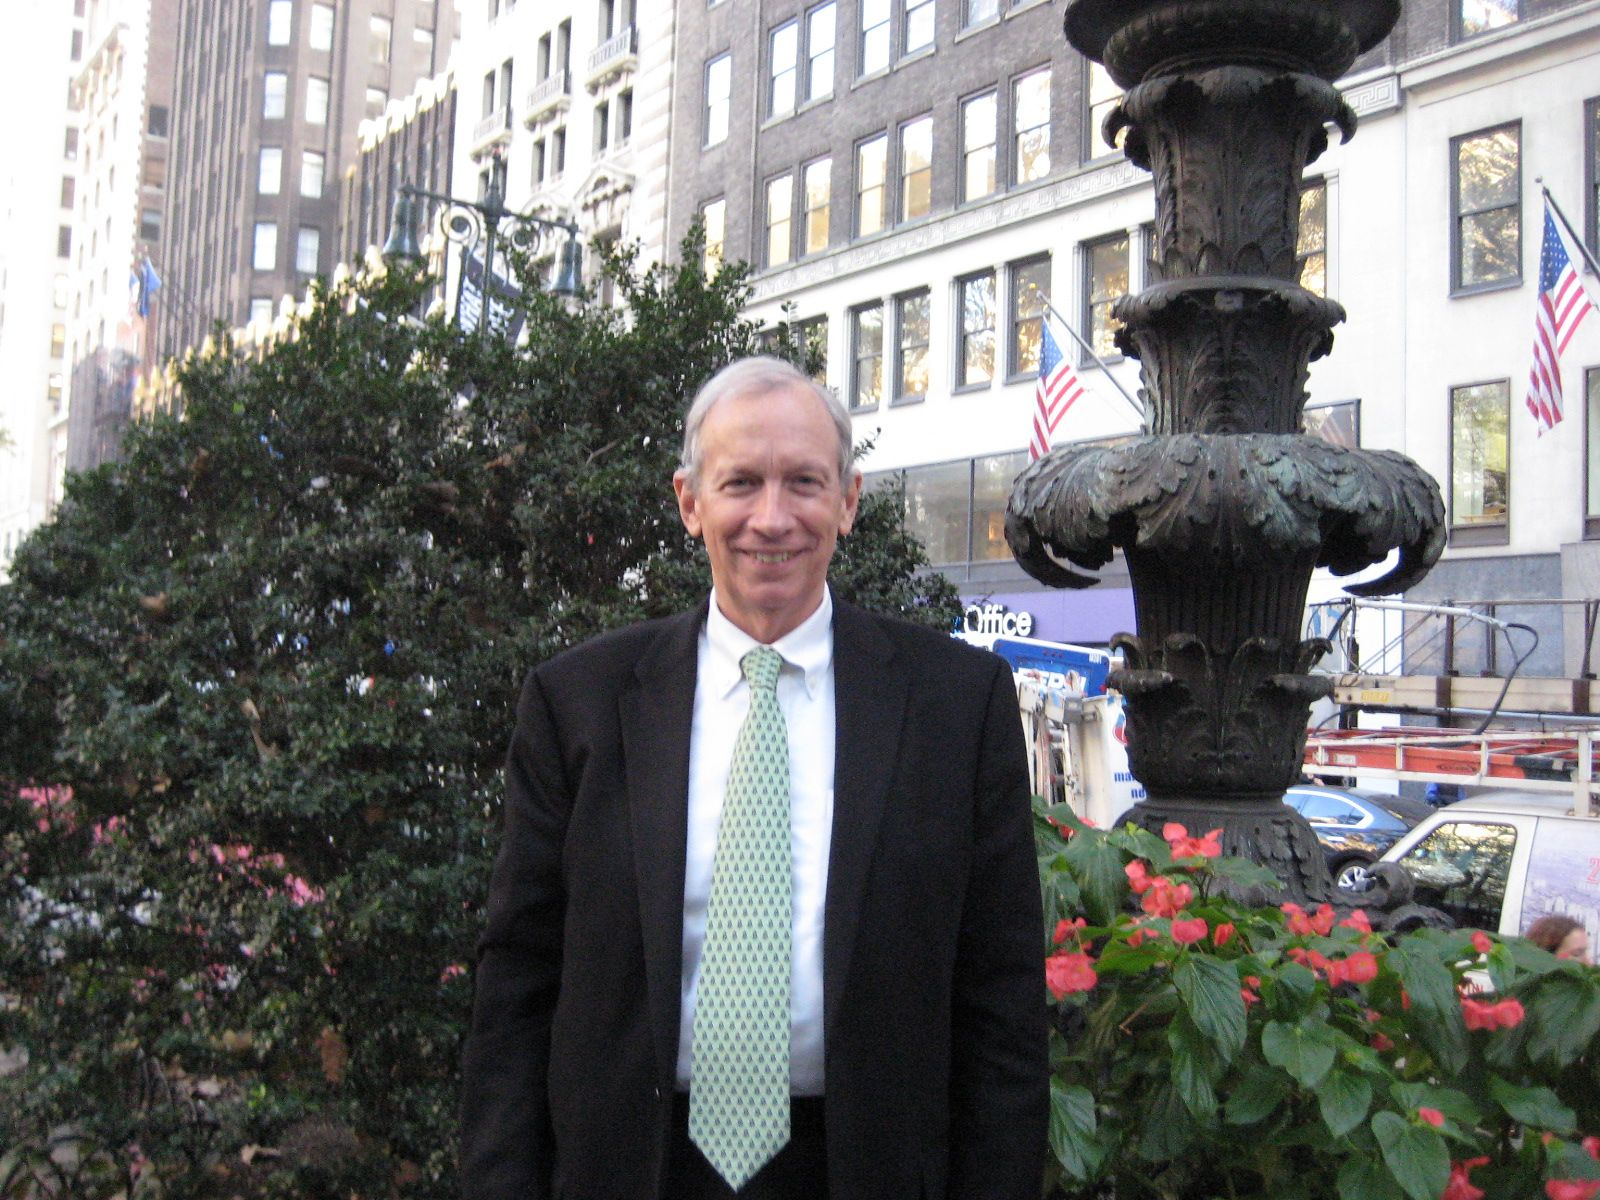 Hank Amon '61 in New York, October 20, 2014